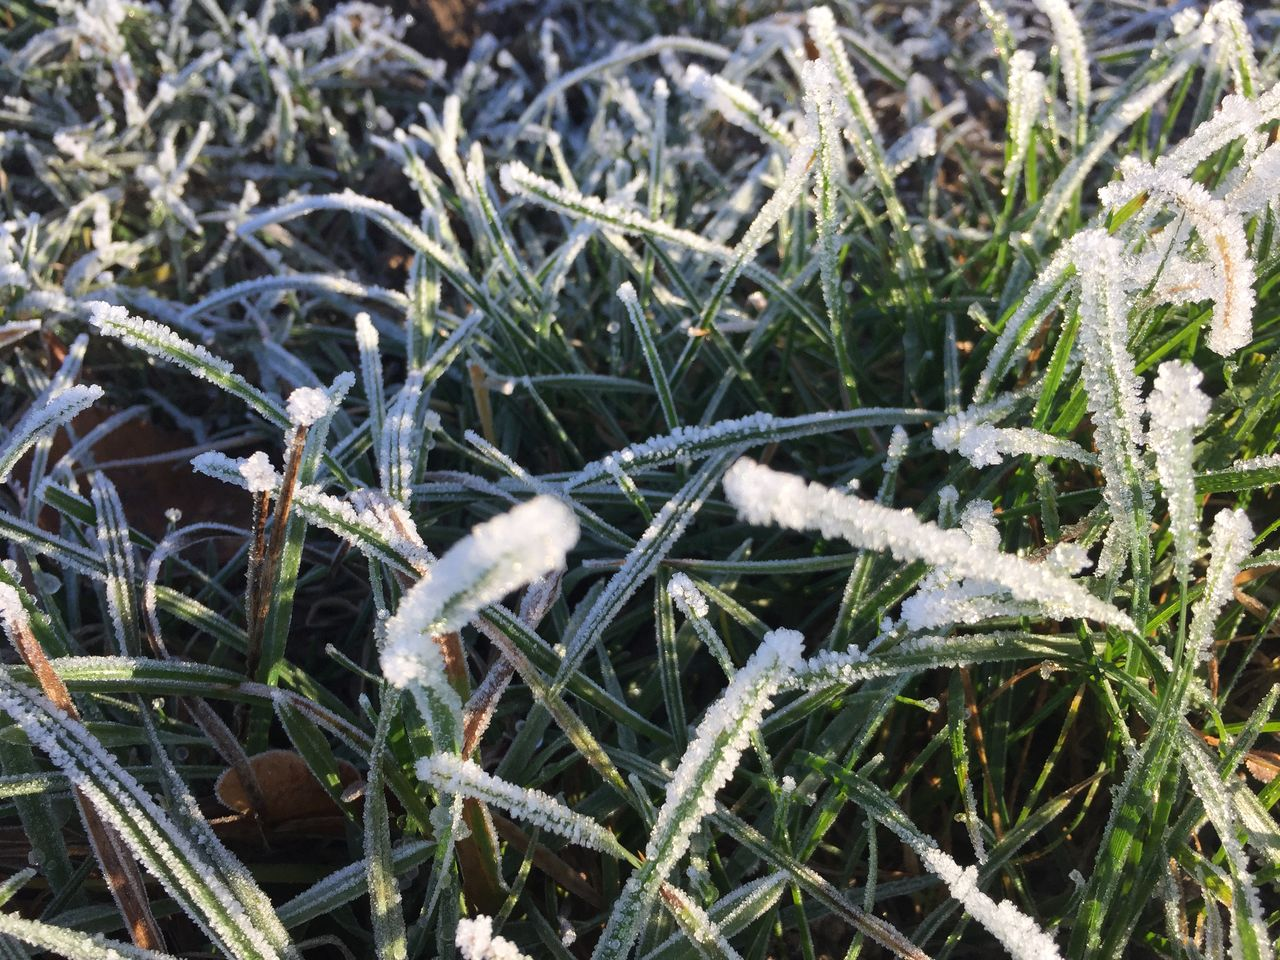 plant, cold temperature, nature, winter, growth, day, snow, close-up, land, no people, frozen, field, beauty in nature, grass, ice, frost, tranquility, outdoors, leaf, blade of grass